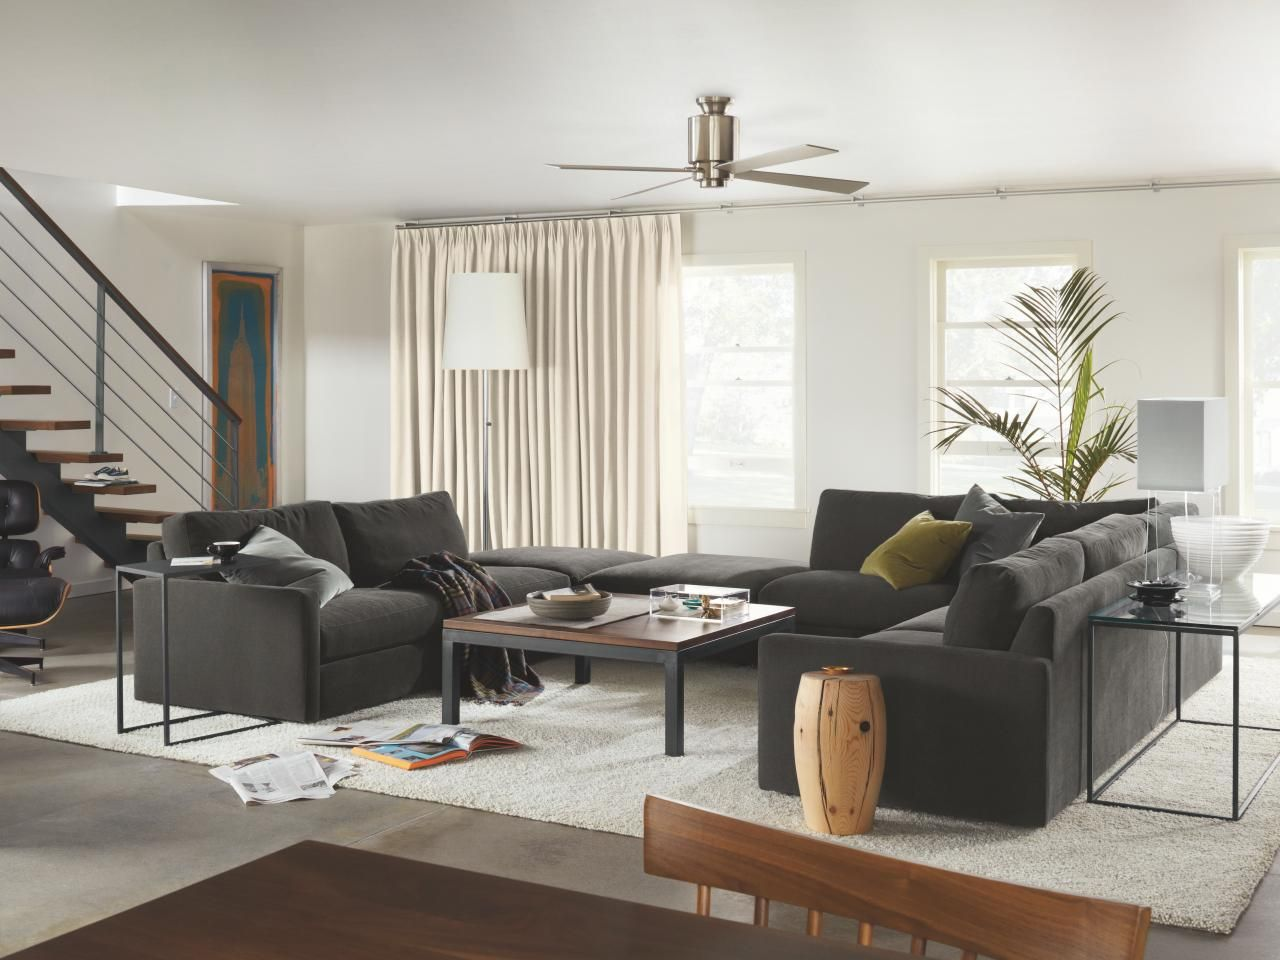 open kitchen living room floor plan pictures%0A Living Room Layouts and Ideas